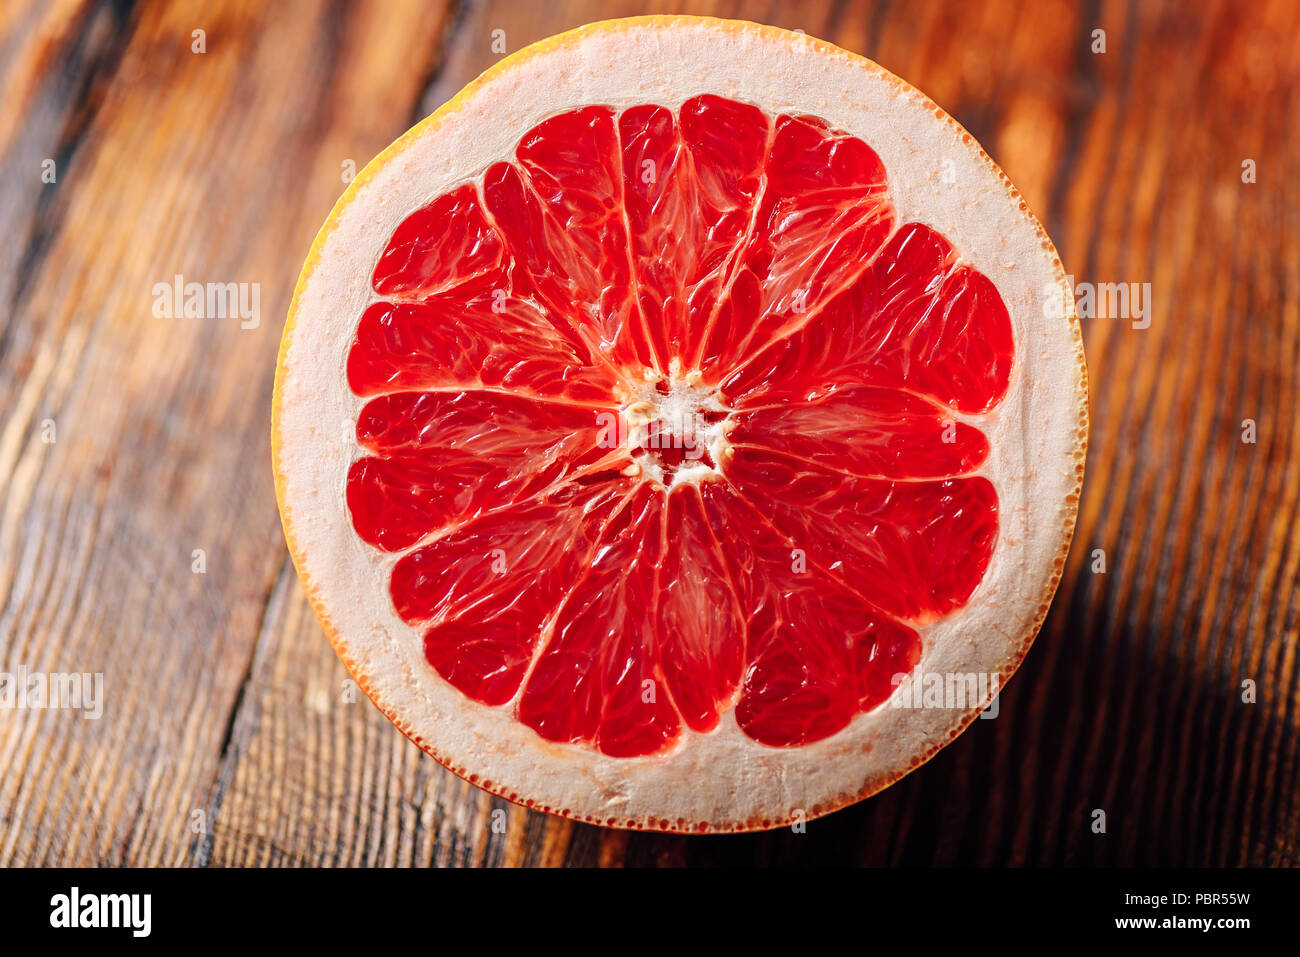 Half of Ripe and Juicy Grapefruit on Wooden Table. - Stock Image